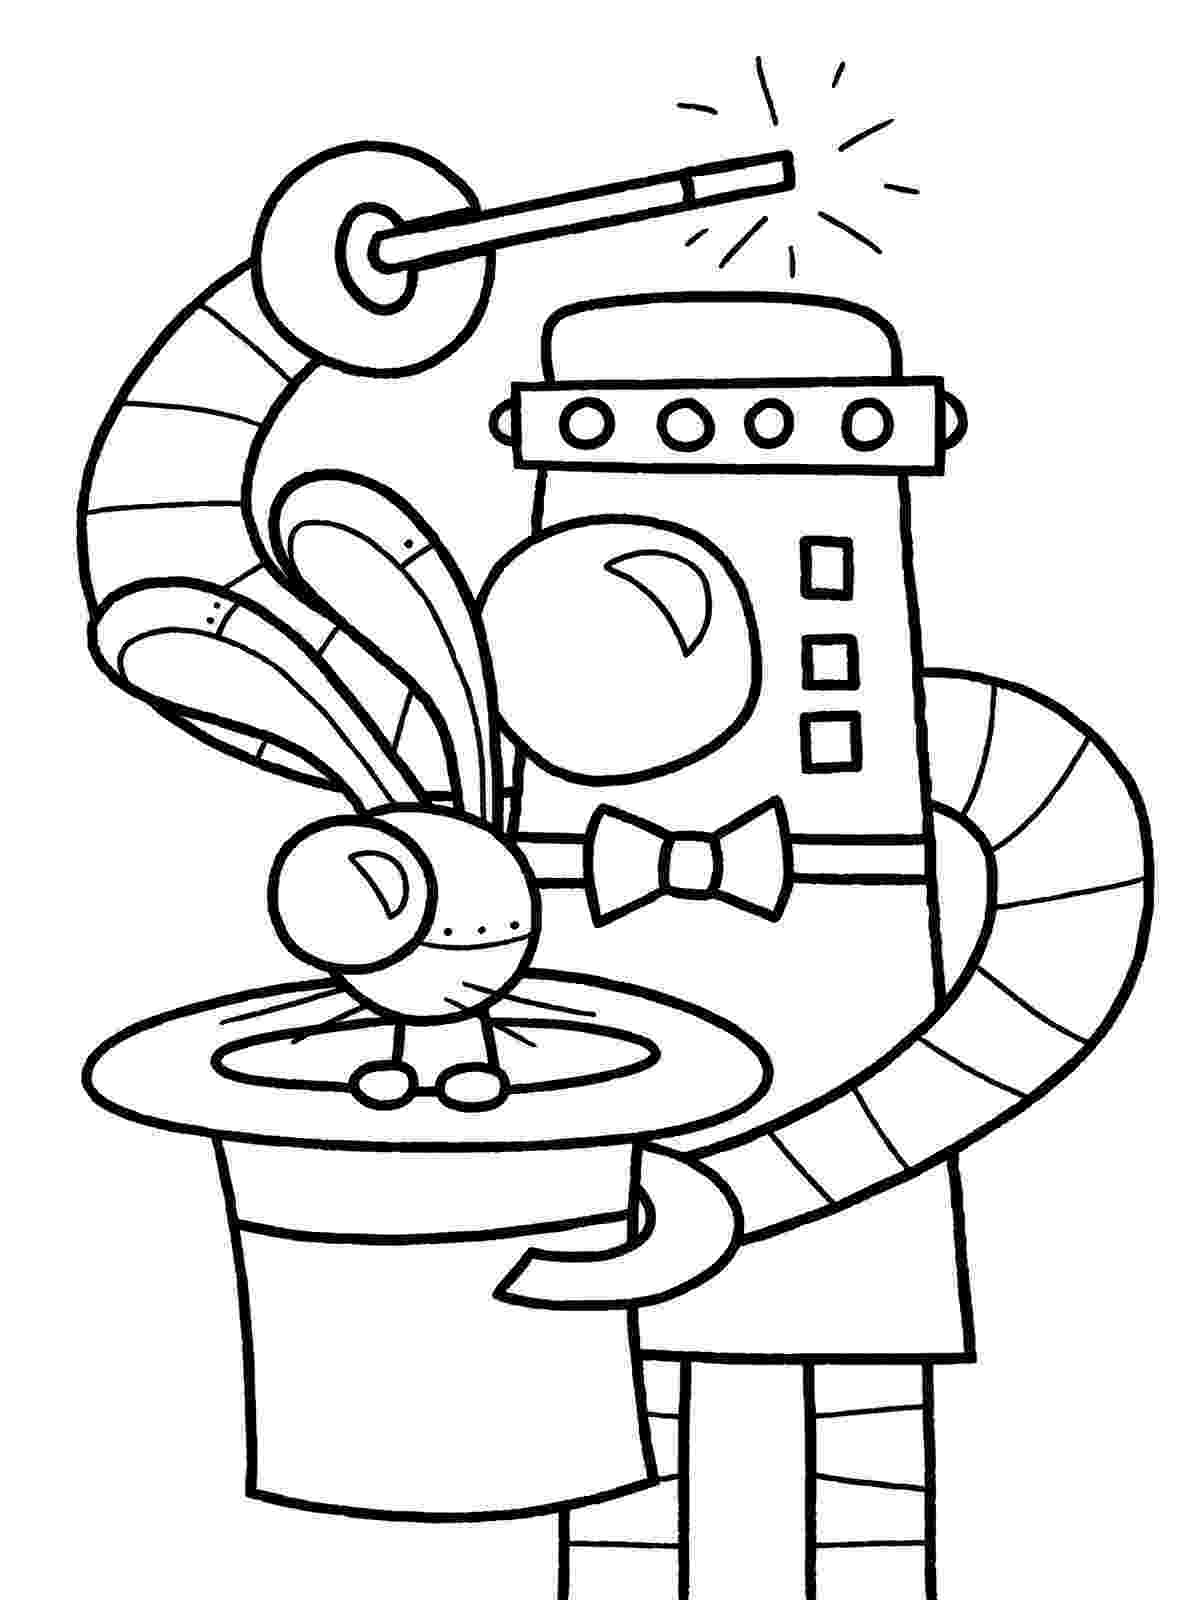 robots coloring pages free printable robot coloring pages for kids cool2bkids coloring robots pages